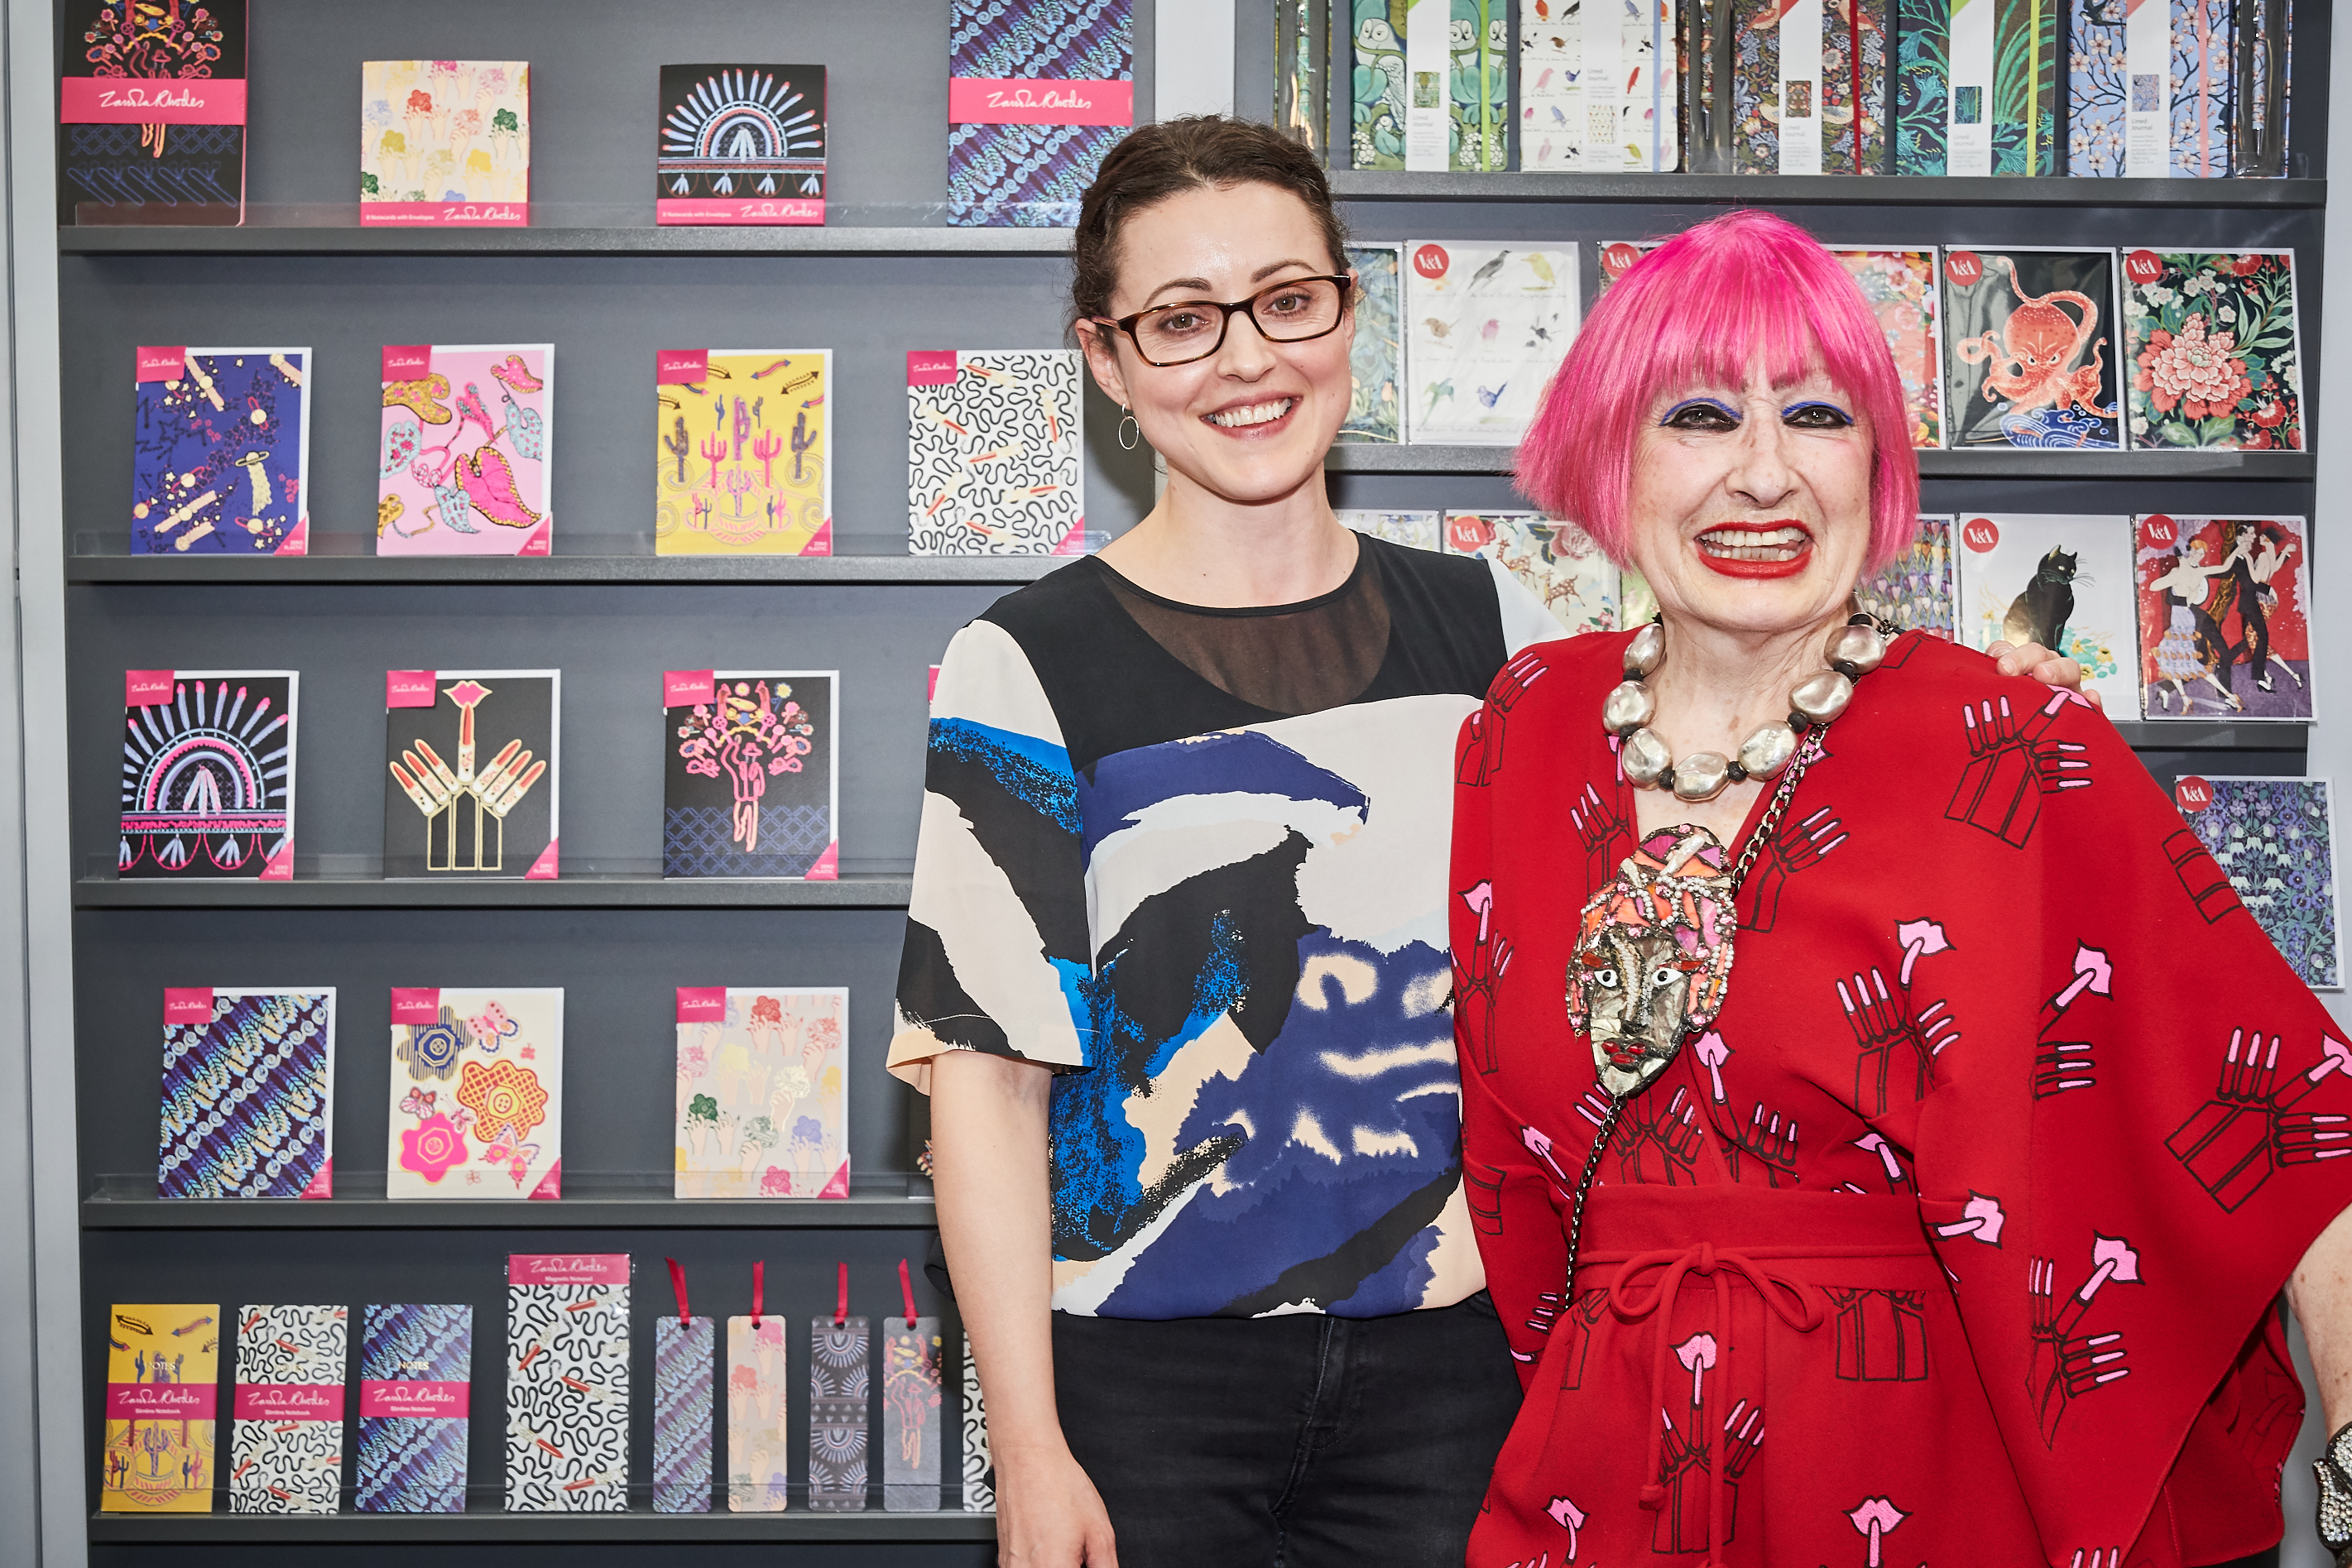 Above: Rosanna Rossi's Anna Taylor with her former 'boss', Dame Zandra Rhodes on the Museums & Galleries stand at PG Live.